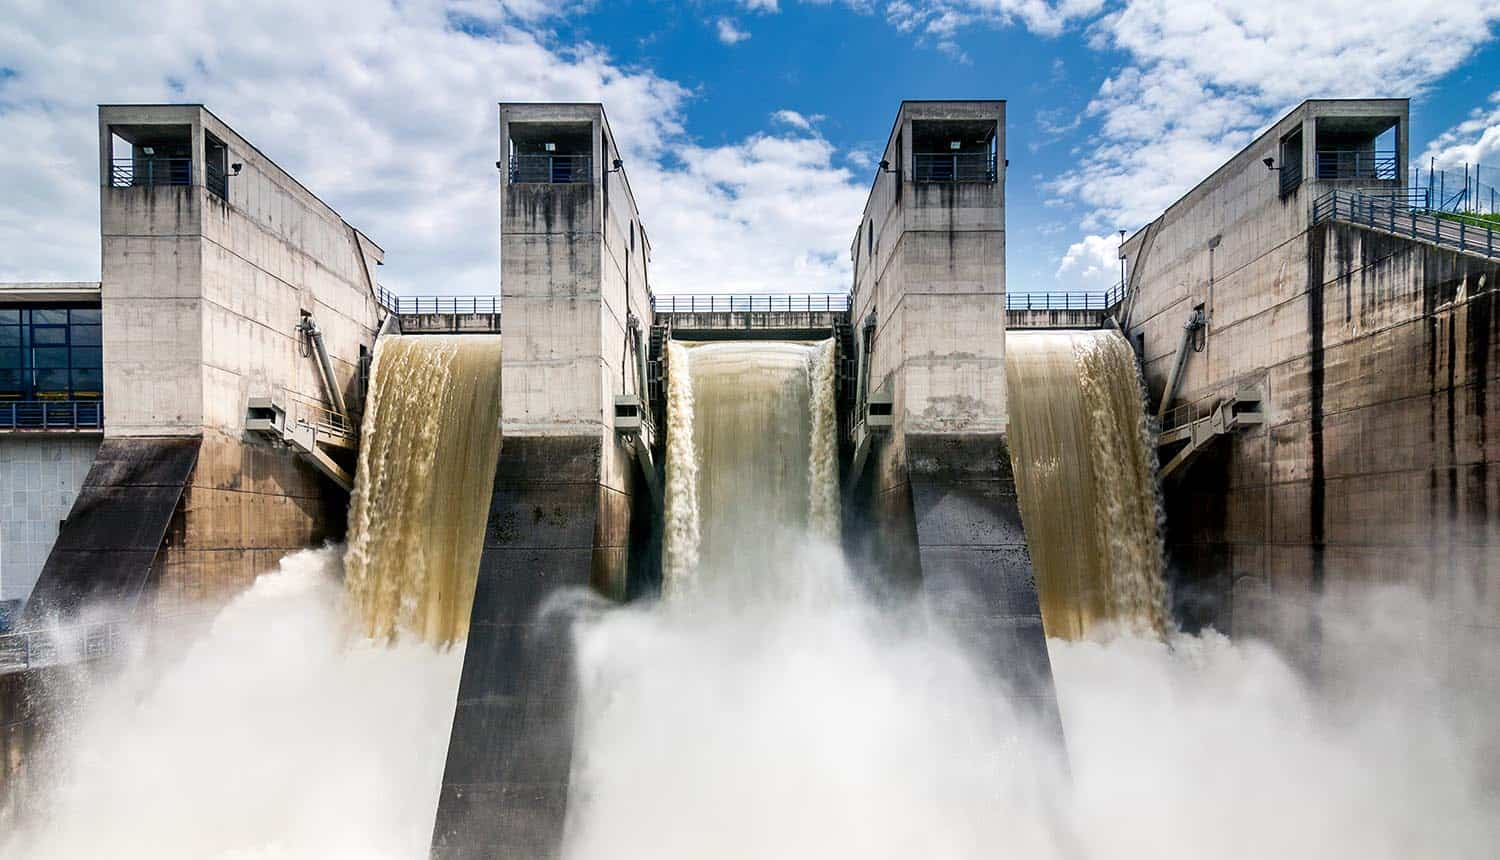 Intense draining of water from dam showing the privacy and security concerns over the massive personal data leak of 1.2 billion people